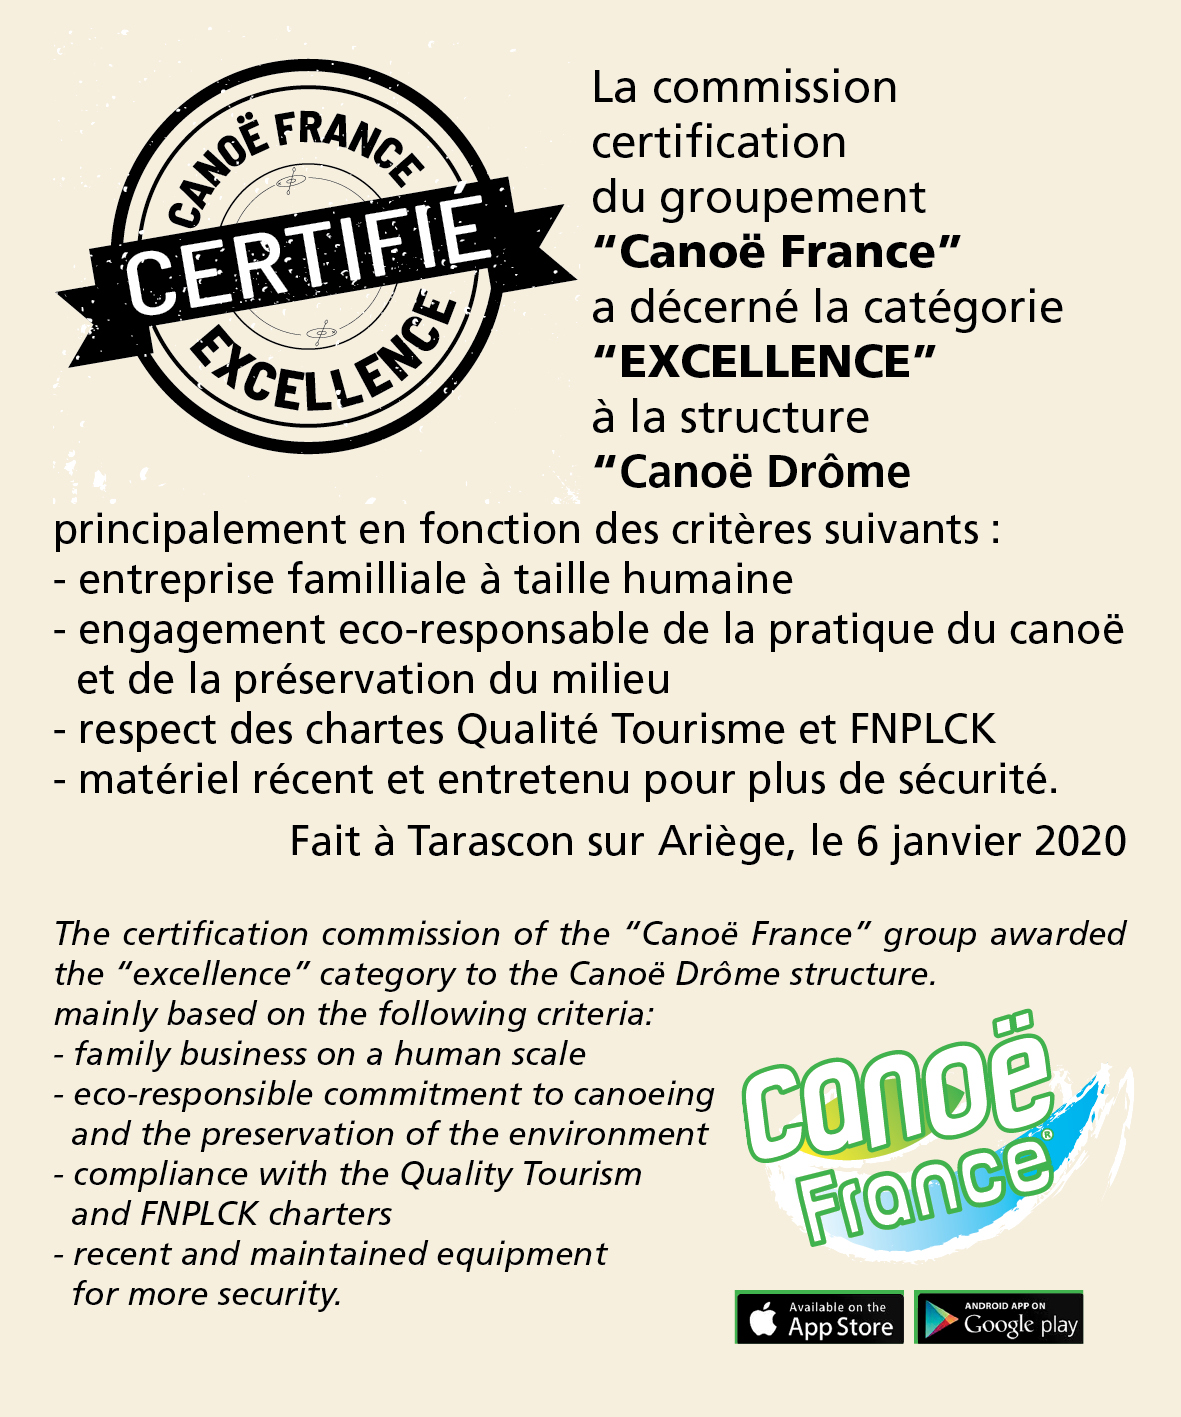 certificat excellence canoe france